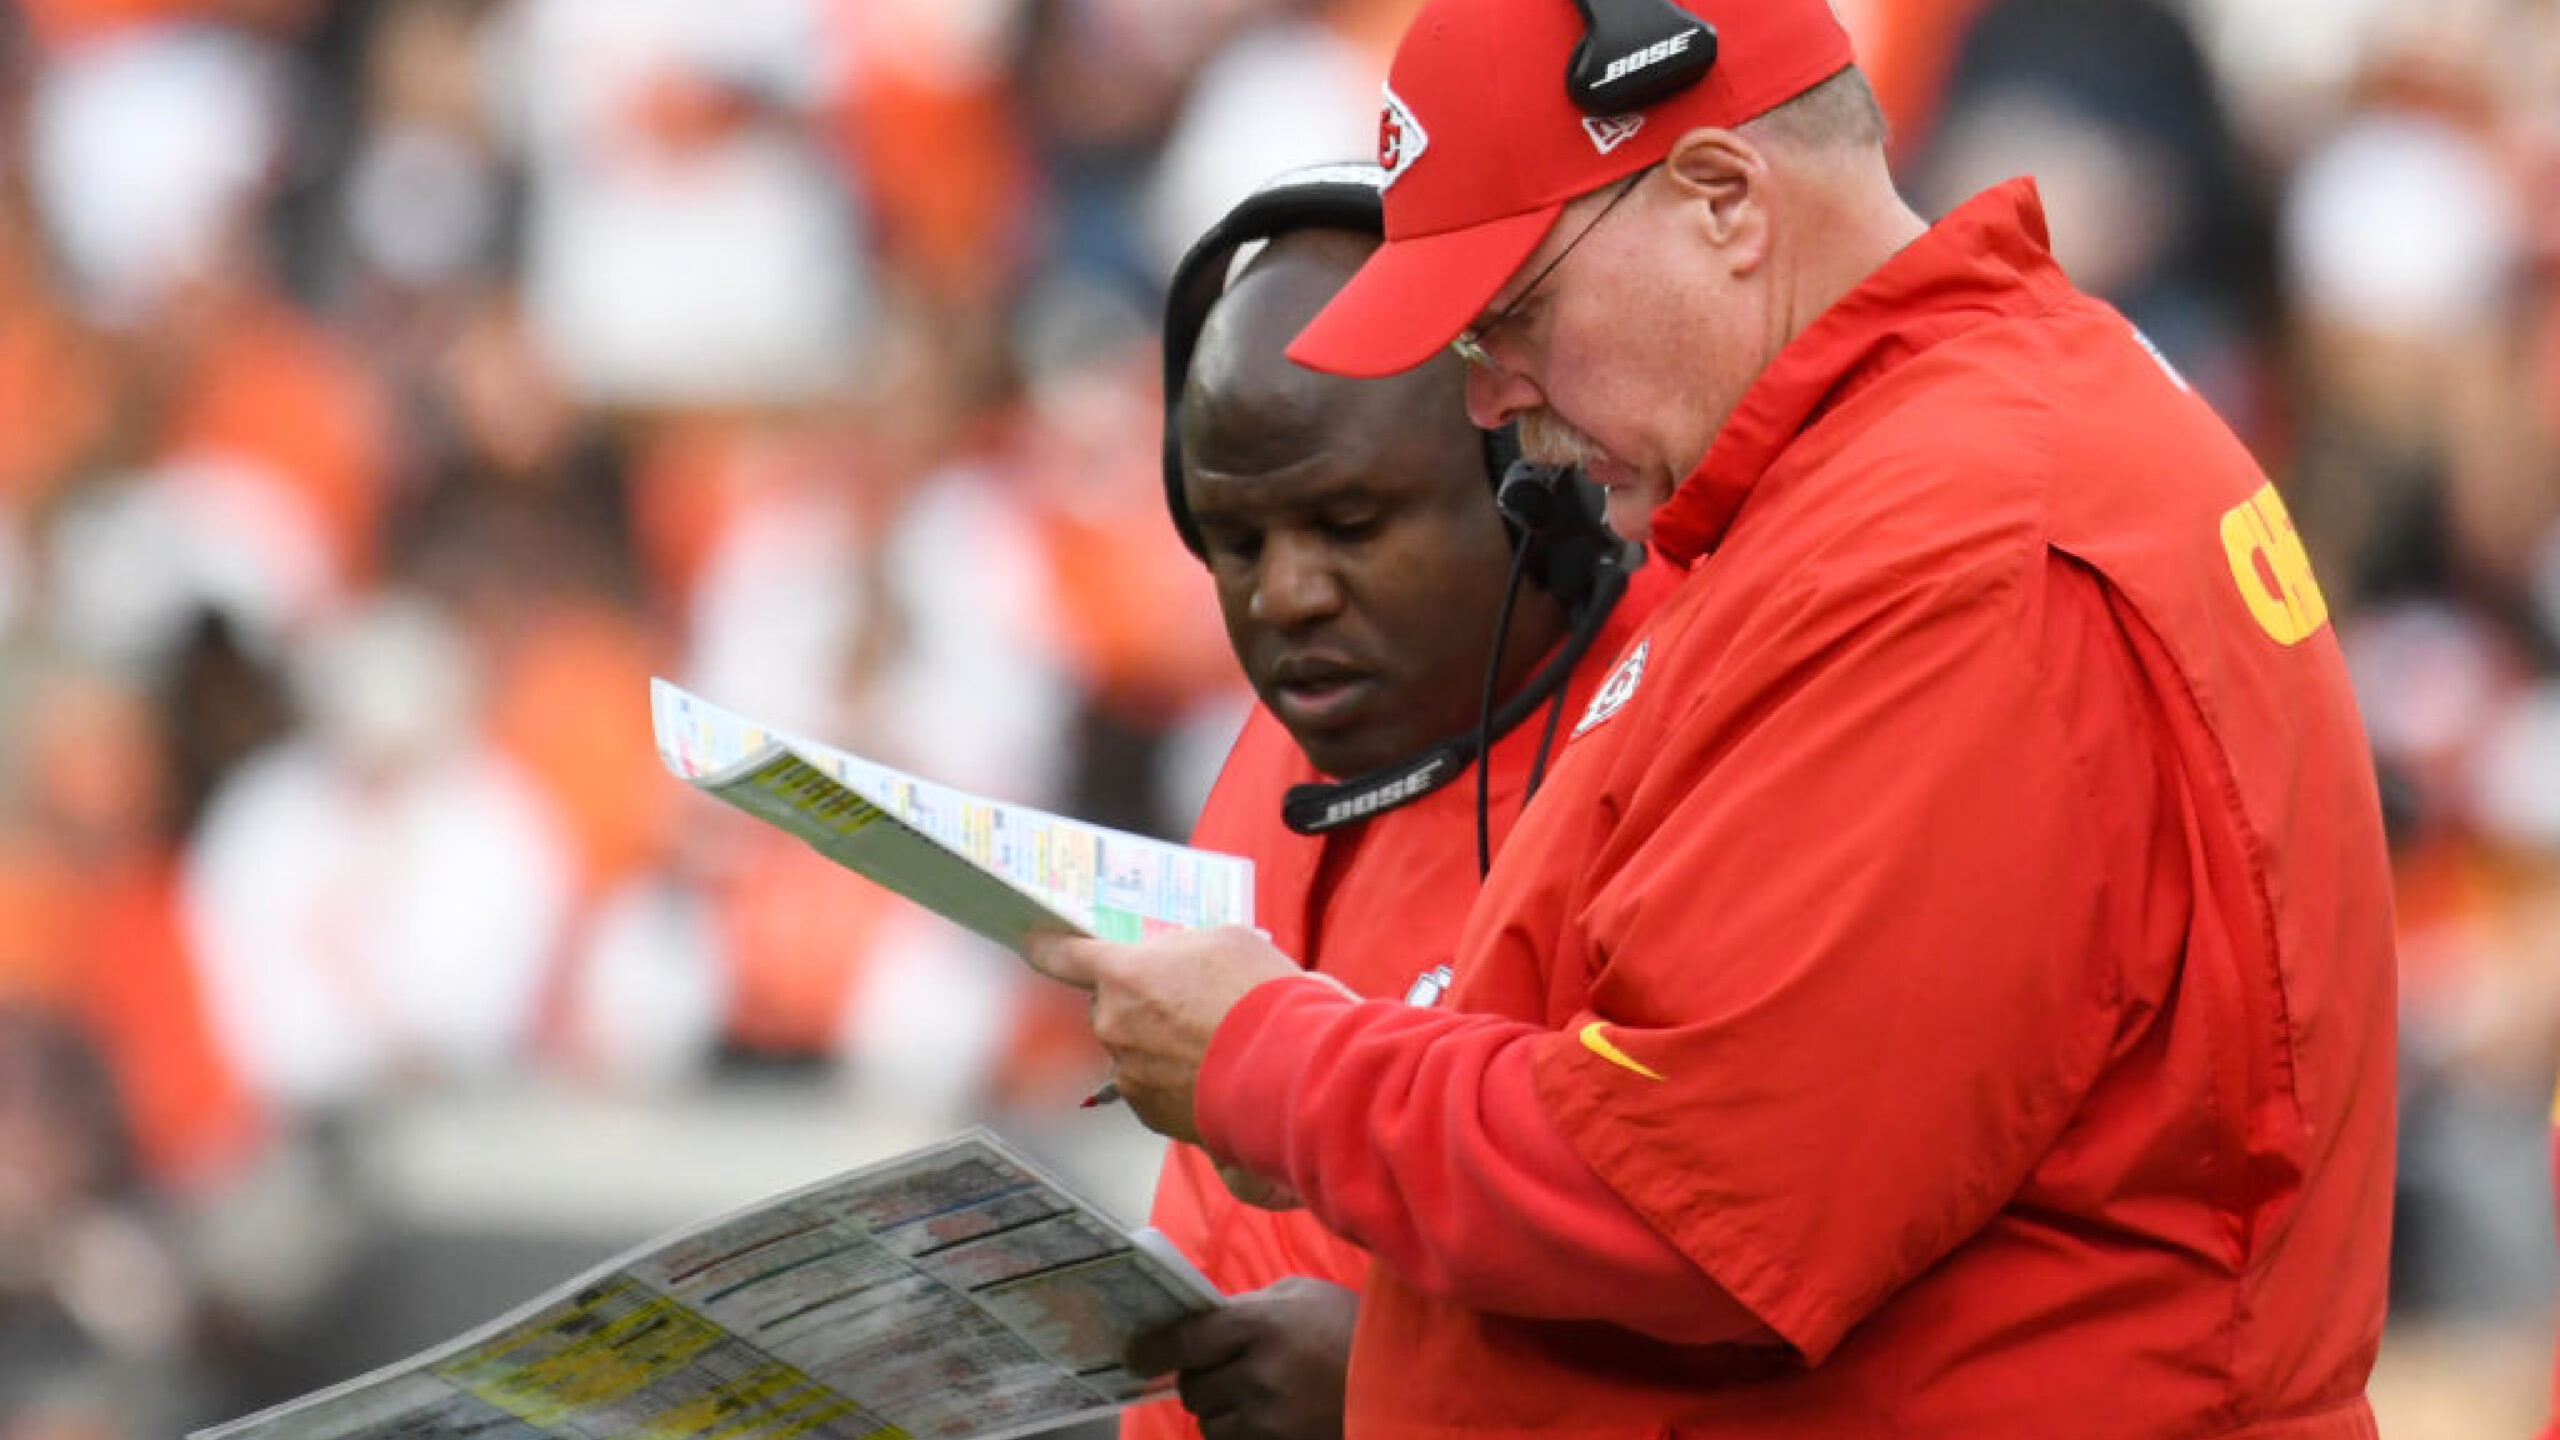 CLEVELAND, OH - NOVEMBER 4, 2018: Head coach Andy Reid and offensive coordinator Eric Bieniemy of the Kansas City Chiefs talk on the sideline in the fourth quarter of a game against the Cleveland Browns on November 4, 2018 at FirstEnergy Stadium in Cleveland, Ohio. Kansas City won 37-21. (Photo by: 2018 Nick Cammett/Diamond Images/Getty Images)